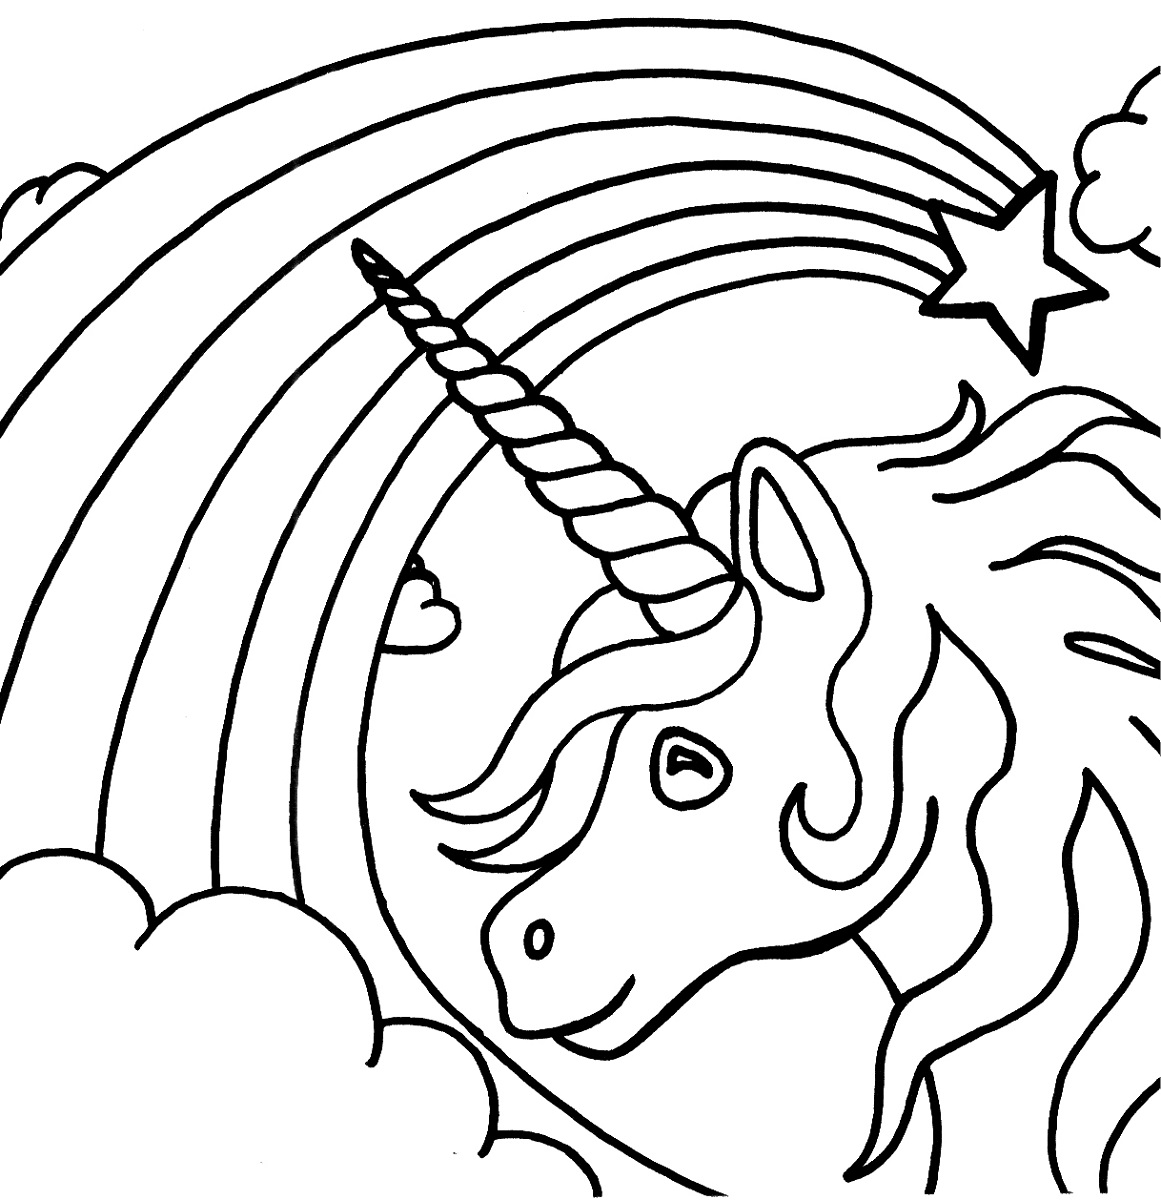 childrens coloring pages unicorn - photo#8